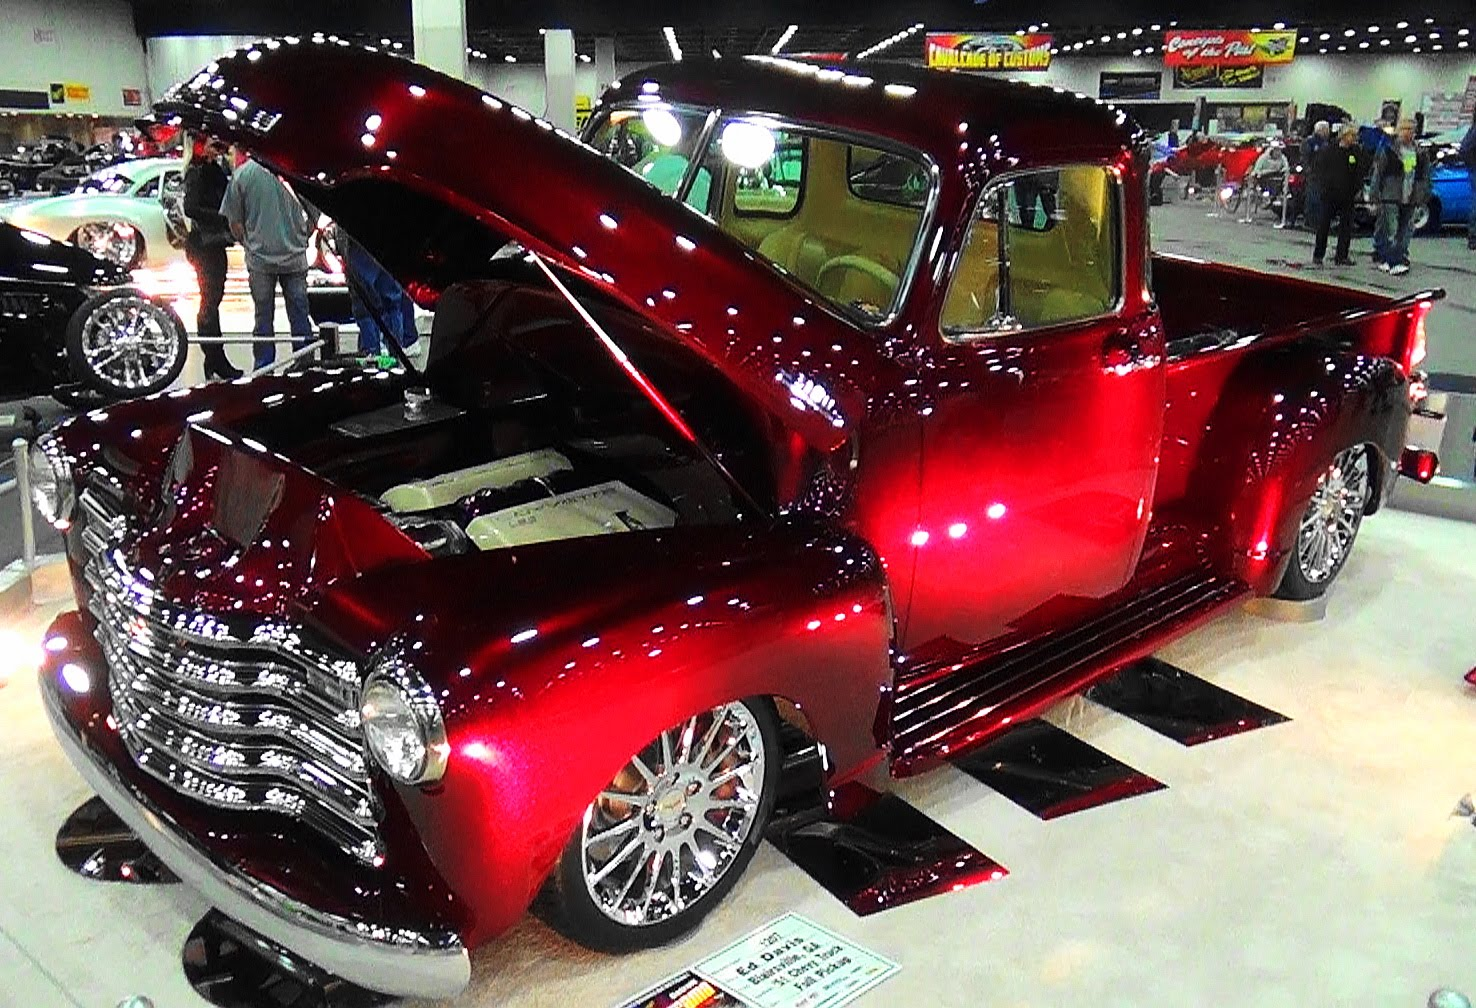 This 51 Chevy 3100 Pickup Is Pure Bliss From The Inside To The Outside